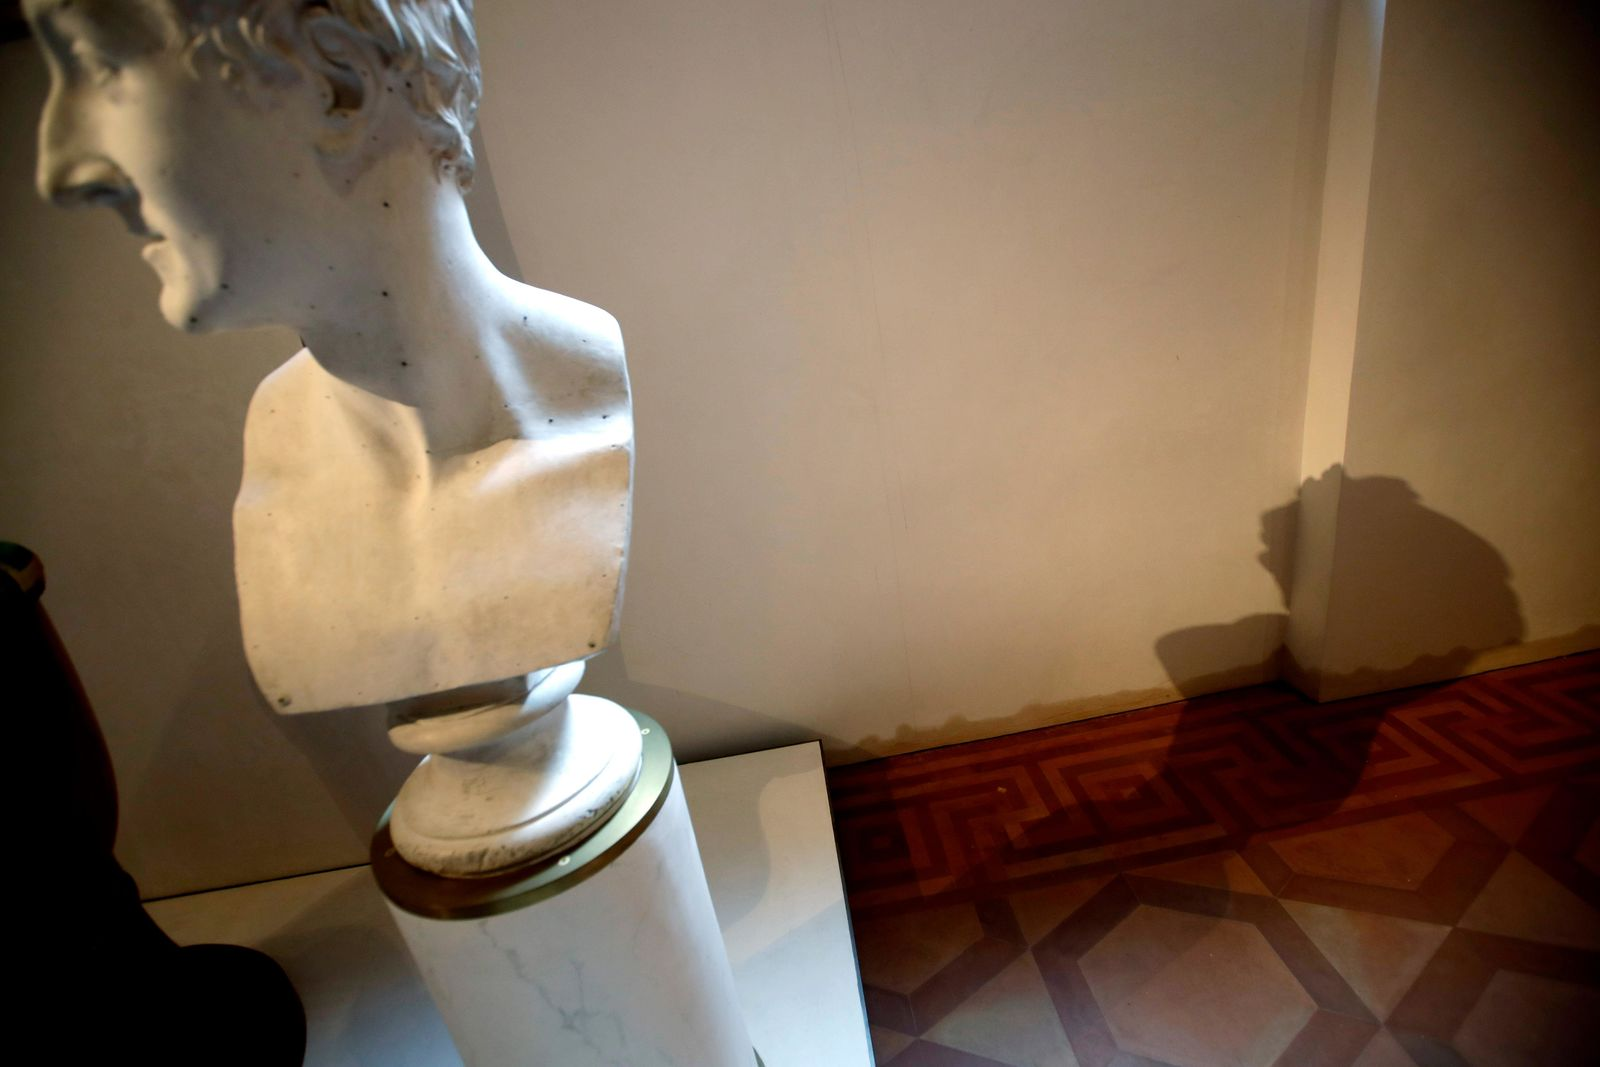 The 'Bust of Leopoldo Cicognara' by Antonio Canova casts its shadow against a wall showing a dark stain indicating the level the water reached during the latest high tide flooding, at the Accademia Gallery, in Venice, Saturday, Nov. 16, 2019. As high tidal waters returned to Venice on Saturday, four days after the city experienced its worst flooding in 50 years, young Venetians are responding to the worst flood in their lifetimes by volunteering to help salvage manuscripts, clear out waterlogged books and lend a hand where needed throughout the stricken city. (AP Photo/Luca Bruno)